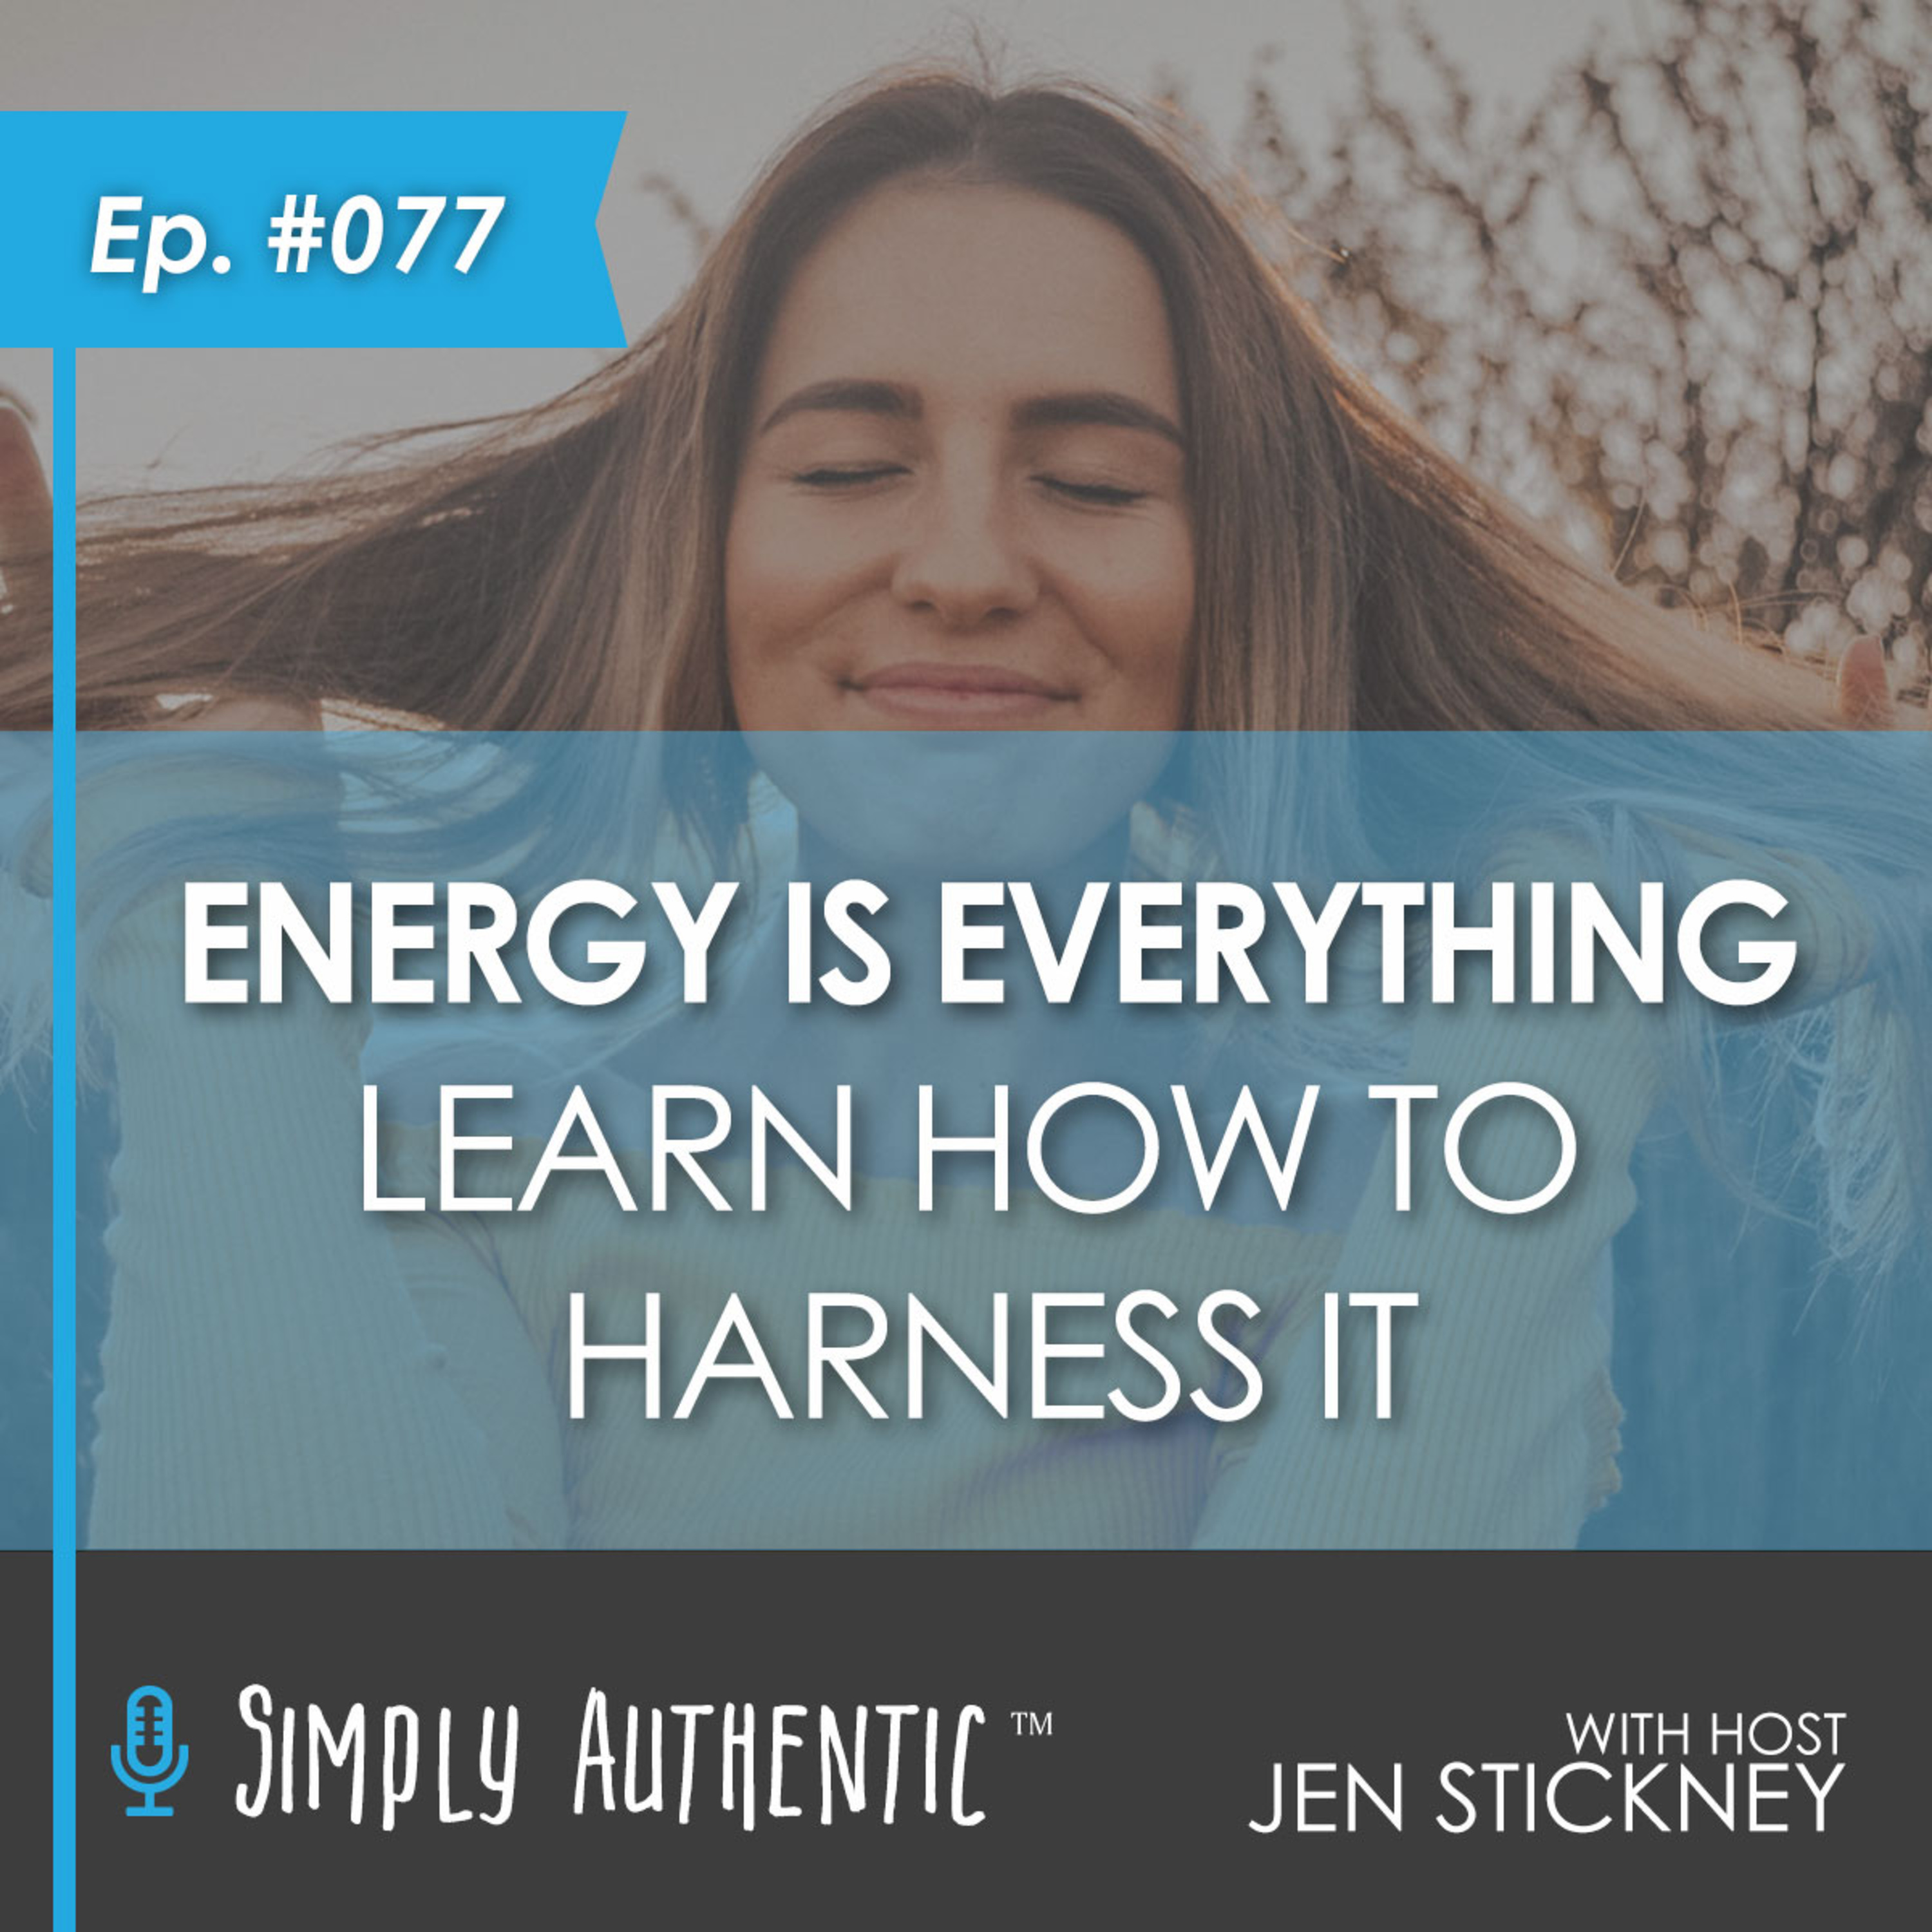 Energy is Everything - Learn How to Harness It